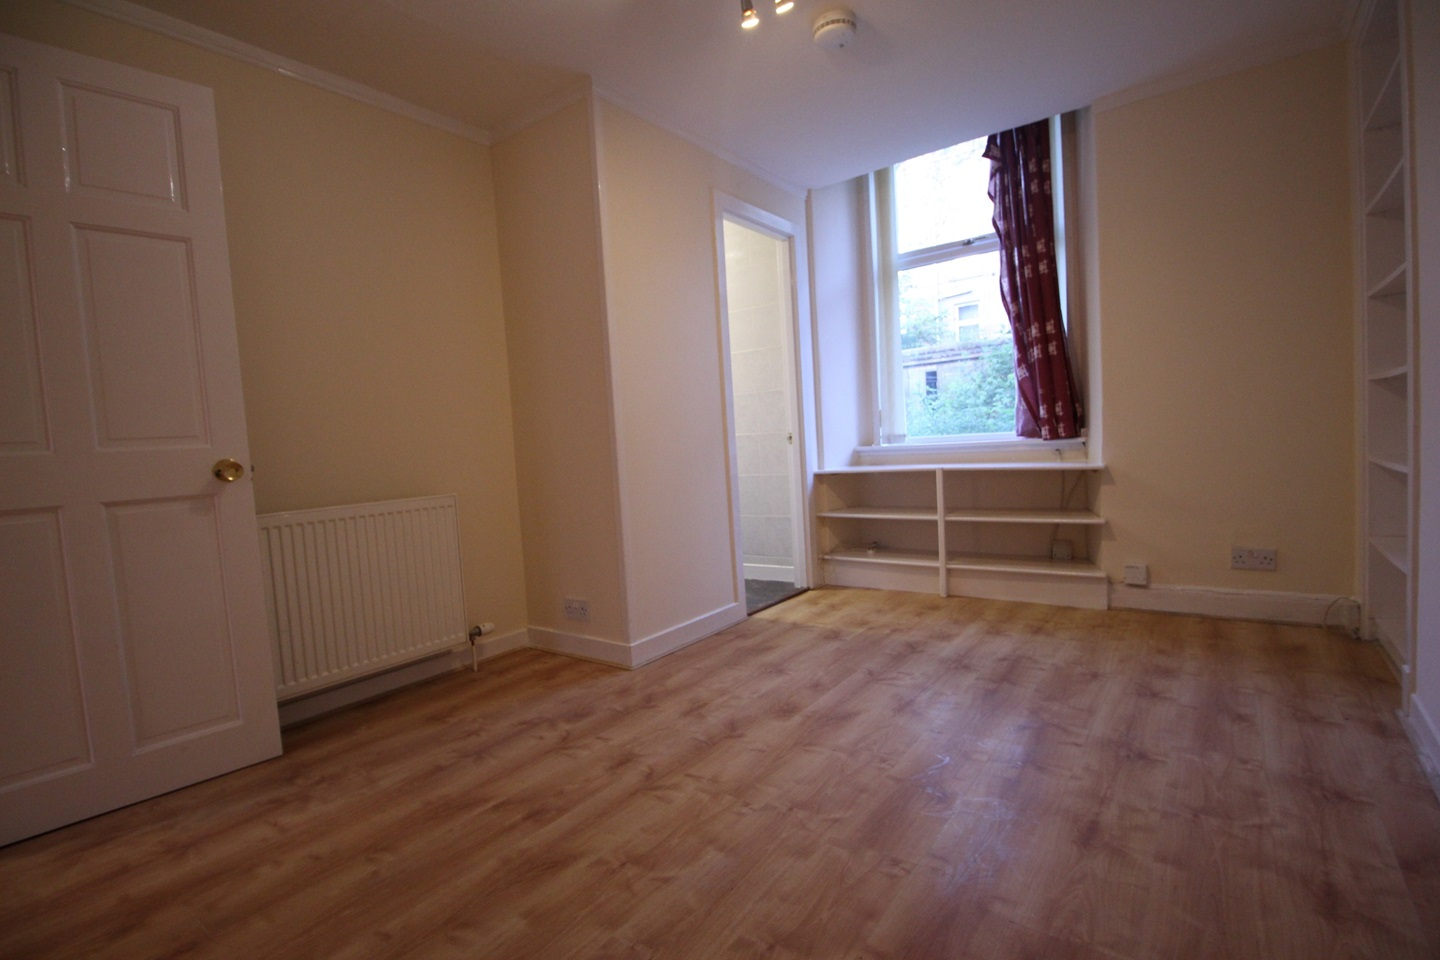 Dundee - 2 Bed Flat, Baldovan Terrace, DD4 - To Rent Now ...